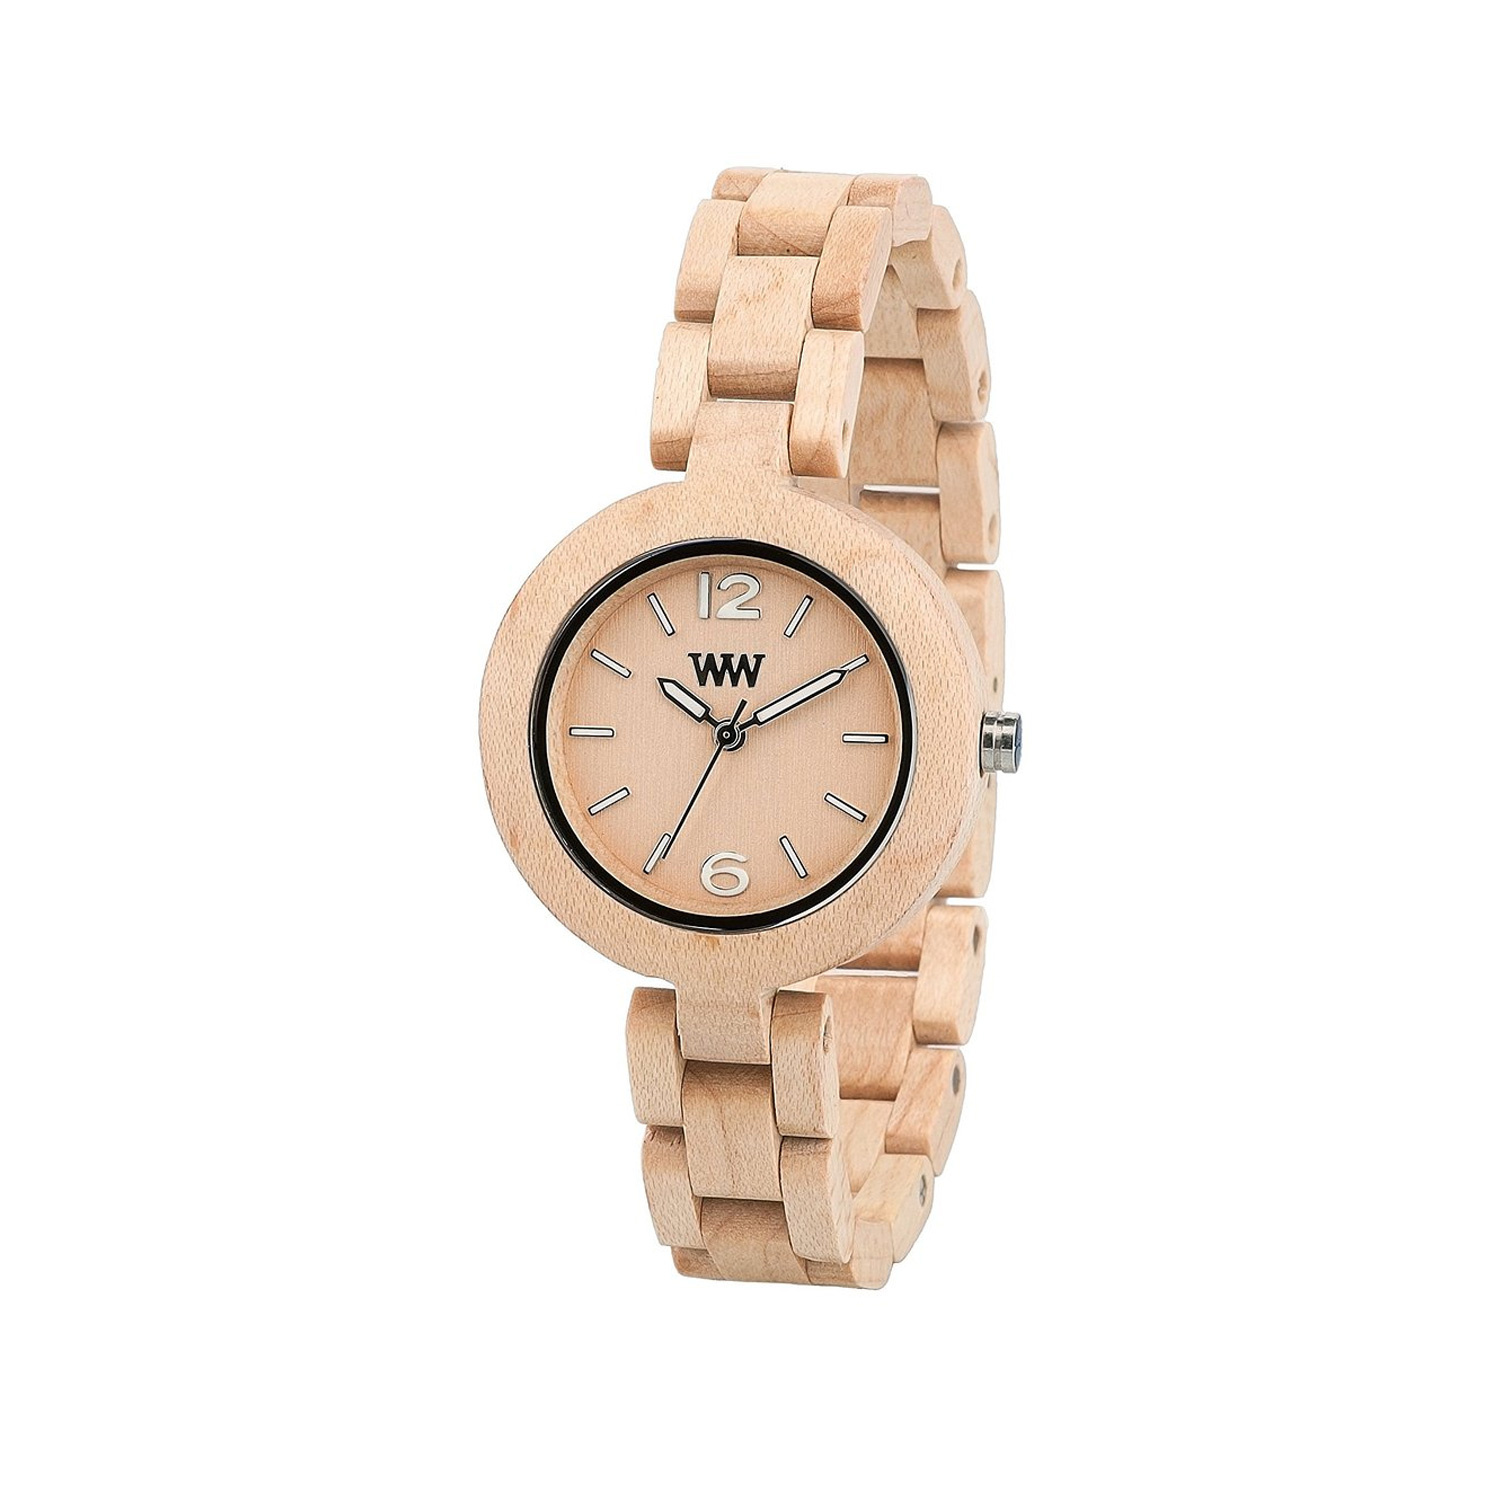 comprare on line 488c5 1e6dd Orologio donna We Wood MIMOSA_BEIGE